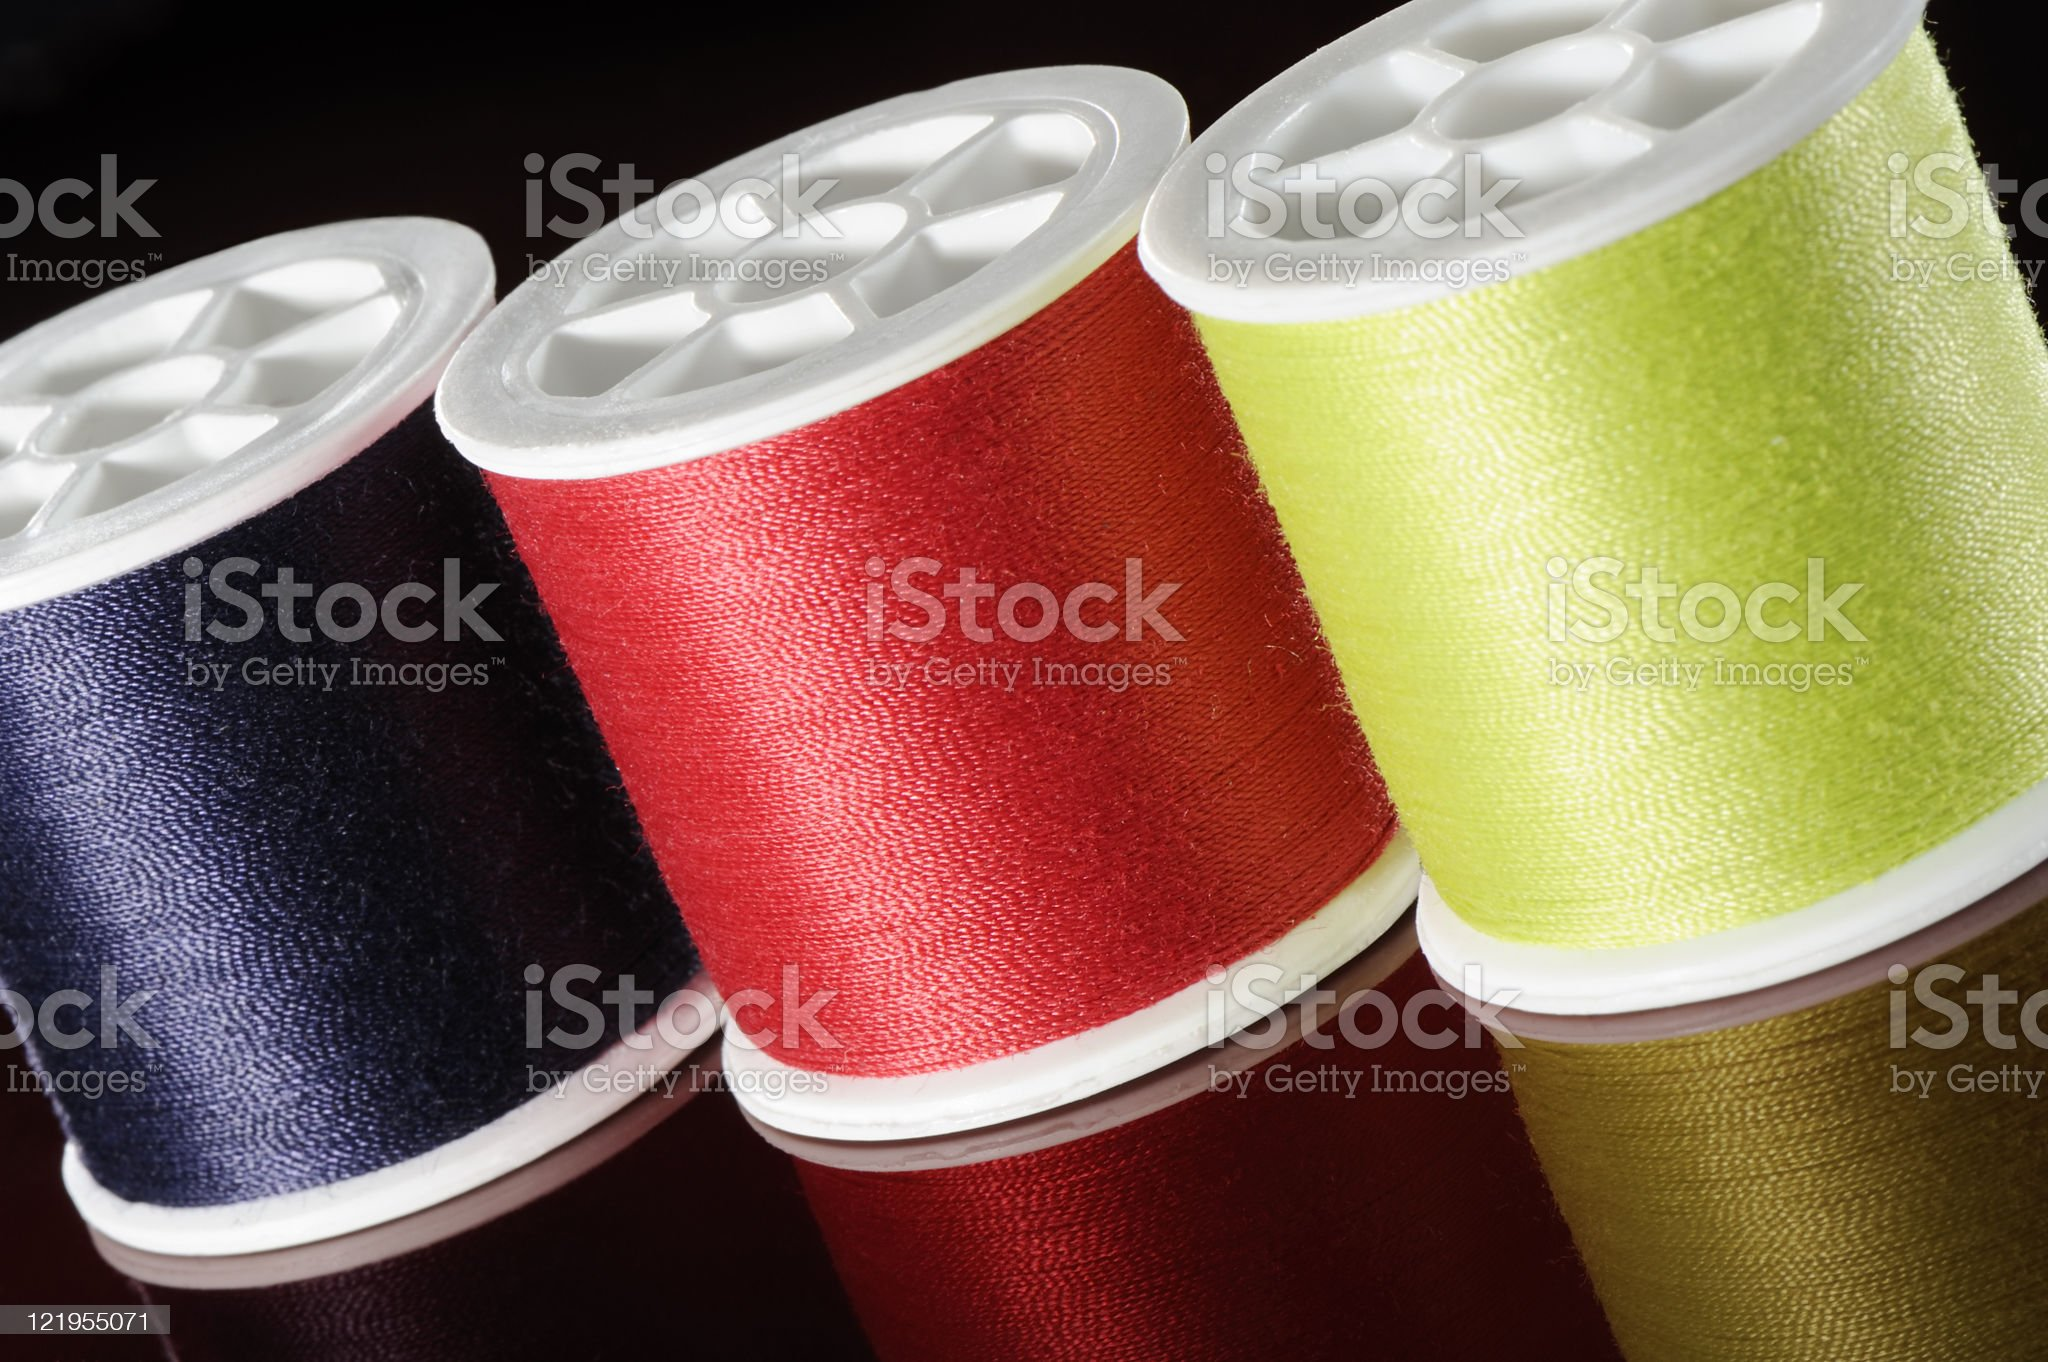 spools of sewing thread royalty-free stock photo